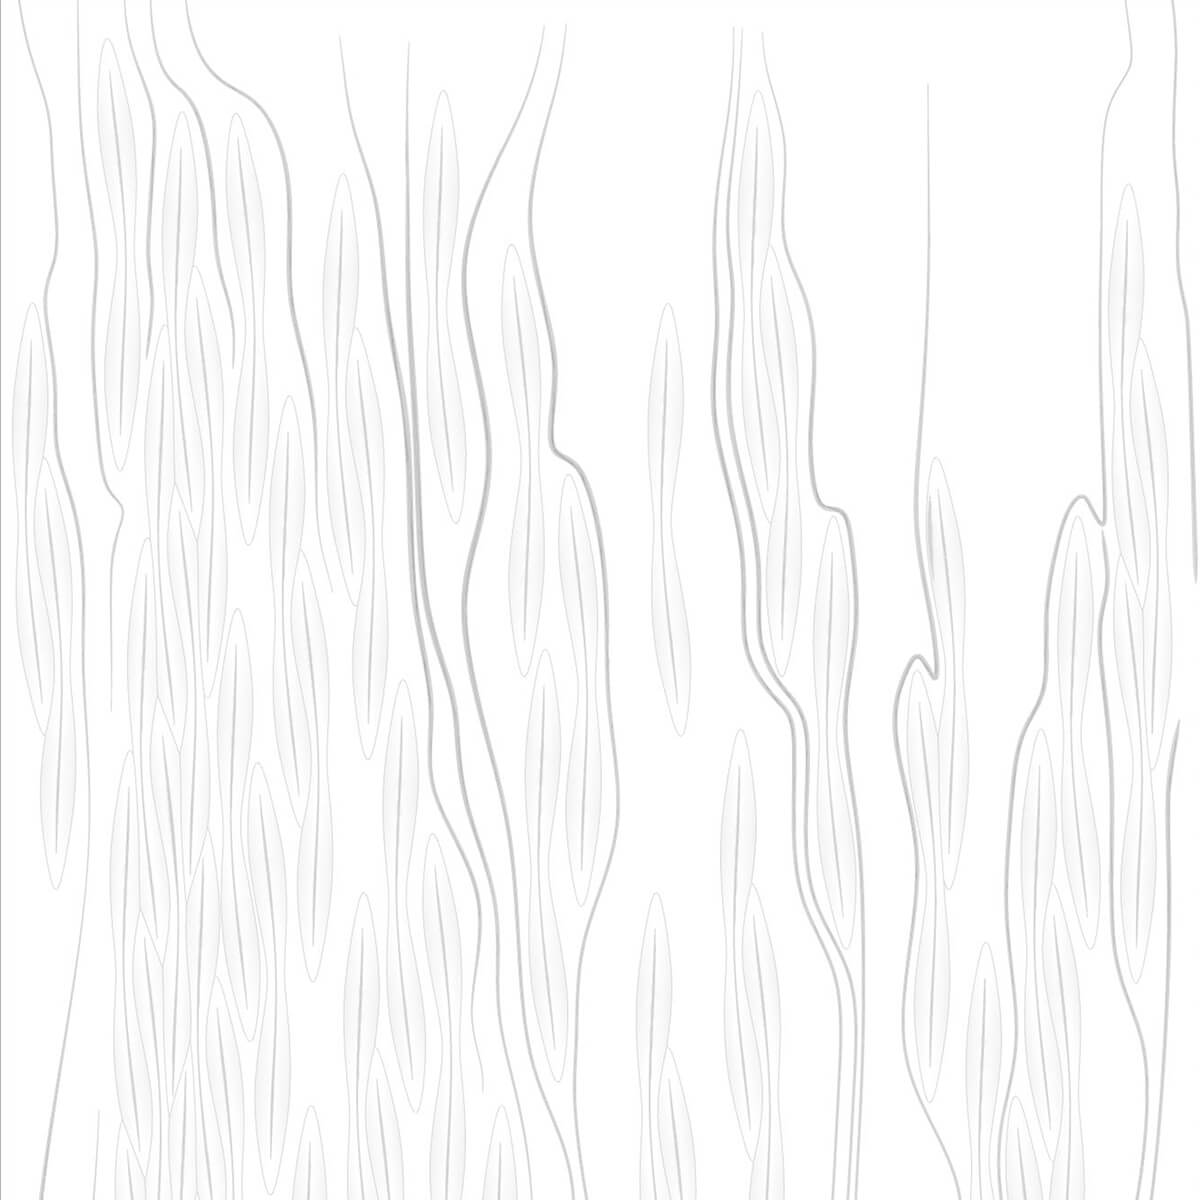 corian textured surfaces david thomas artist collection knoll line drawing